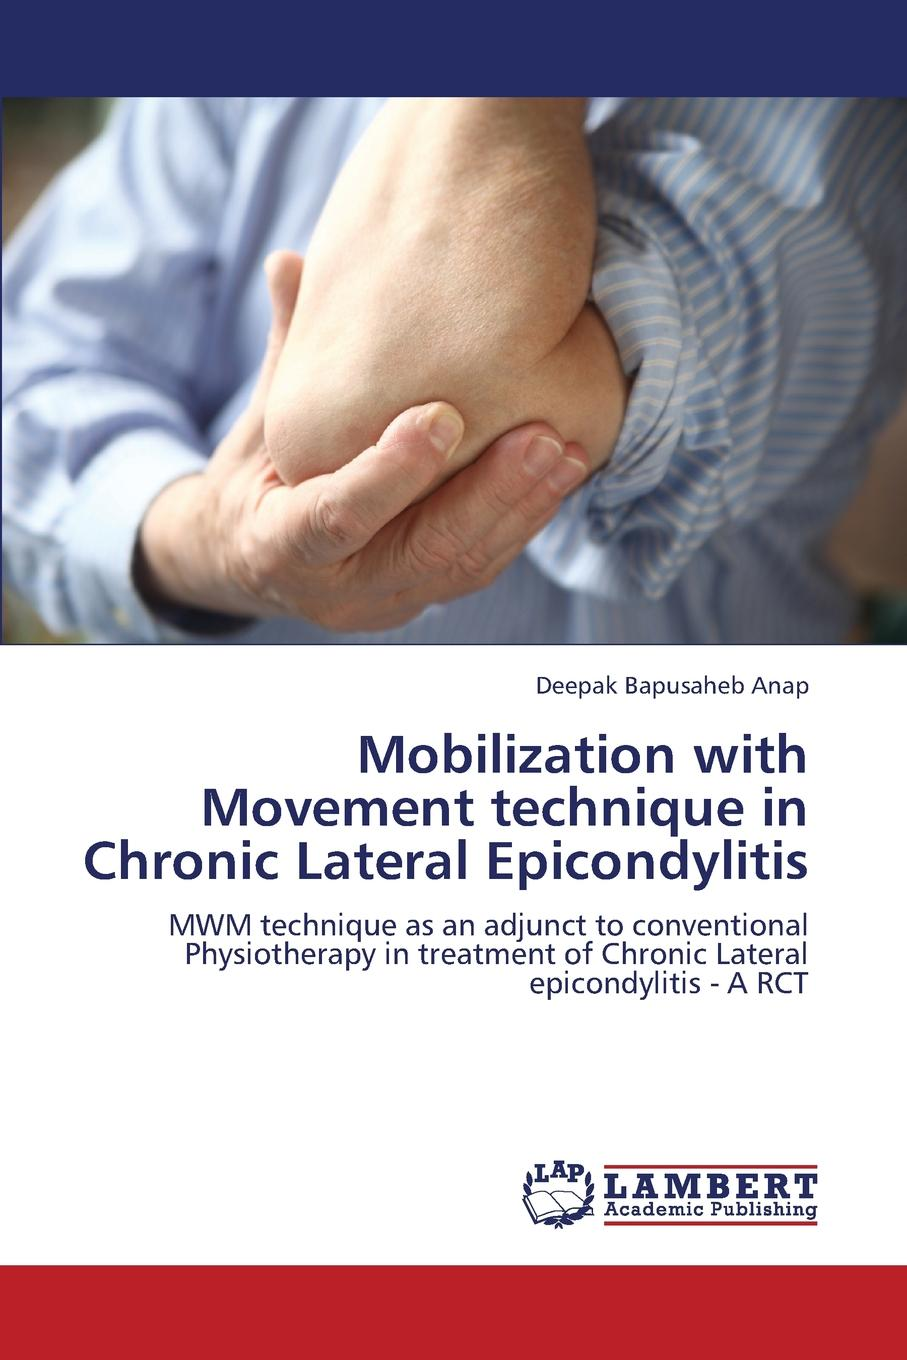 Anap Deepak Bapusaheb Mobilization with Movement Technique in Chronic Lateral Epicondylitis narayanan meyyappan and rangasamy parthiban a novel separation technique using hydrotropes